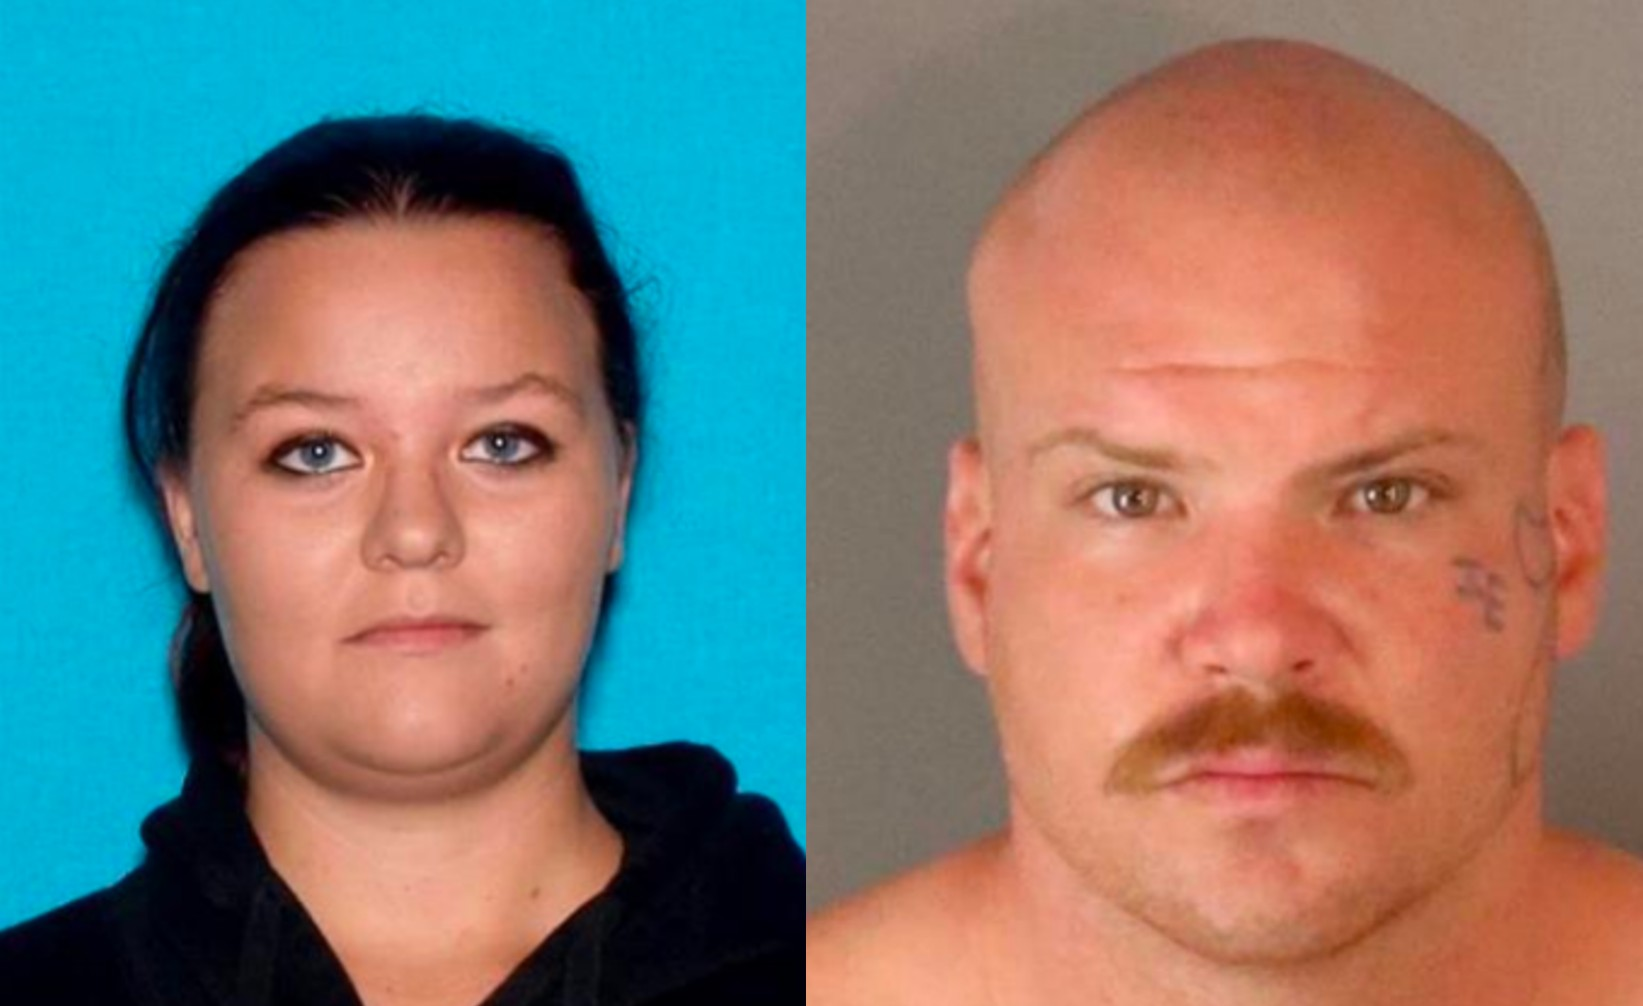 From left to right: Homicide victim Mercey Marie Brasher, 24, appears in a photo released on Oct. 24, 2020. David Gilbert Colvin, 29, appears on the right. He is being held at San Bernardino County West Valley Detention Center on $1.2 million bail in connection with the fatal shooting of Brasher and wounding of an unidentified man Oct. 19. (San Bernardino Police Department)